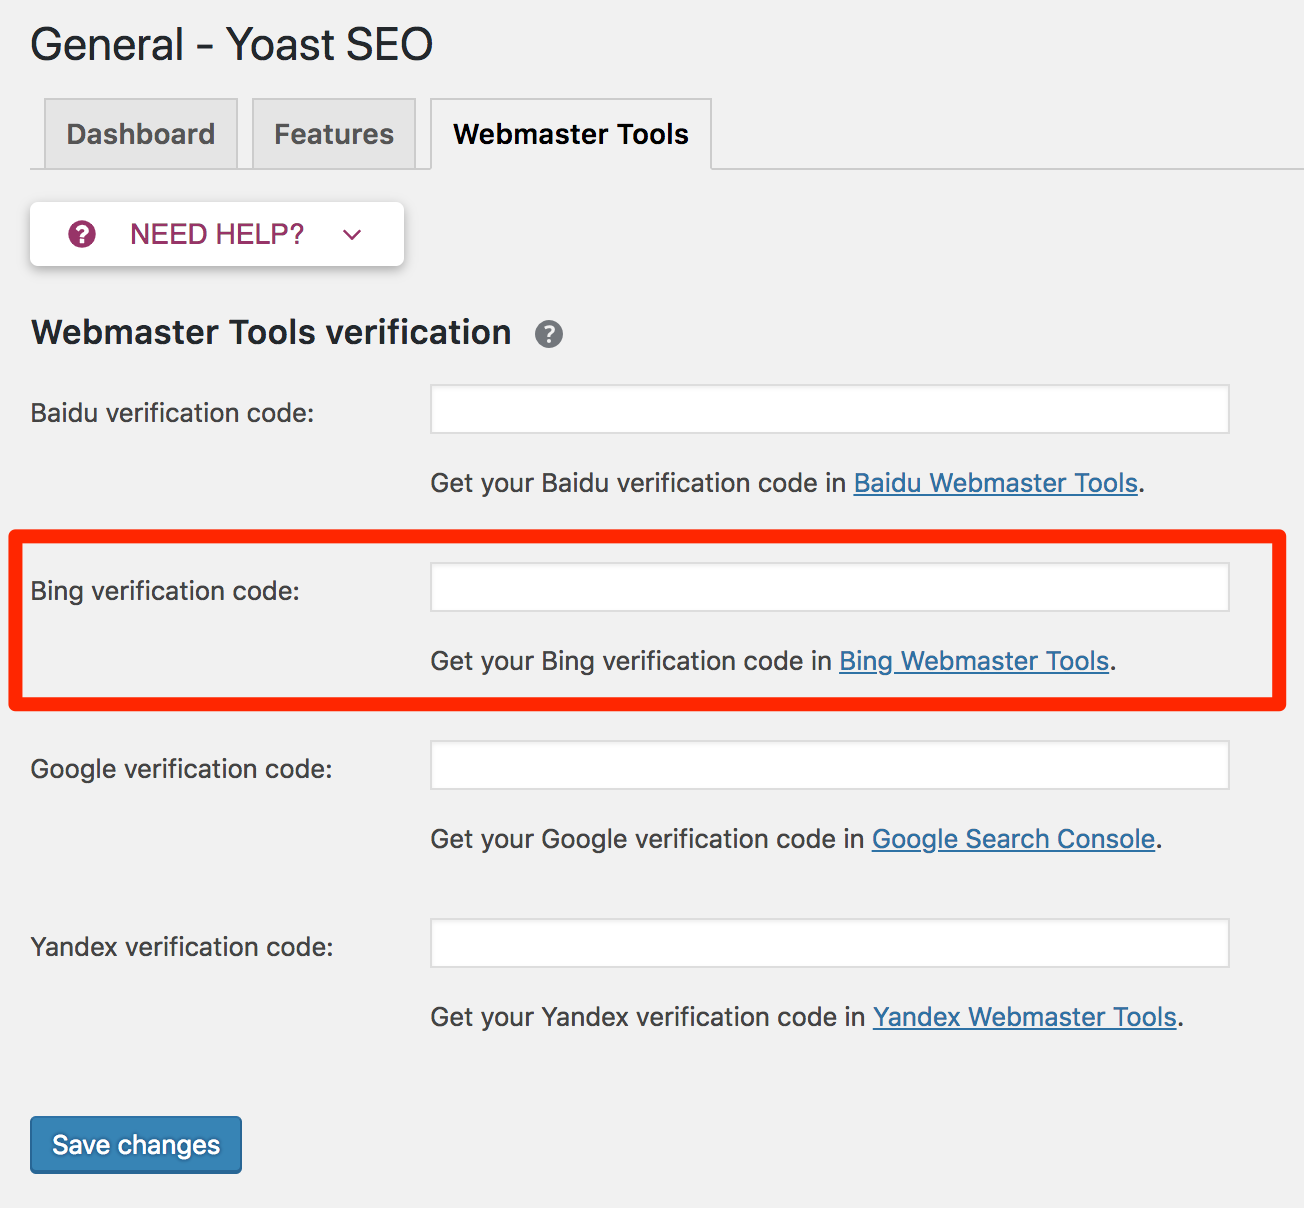 How To Add Your Website To Bing Webmaster Tools - Yoast Knowledge Base